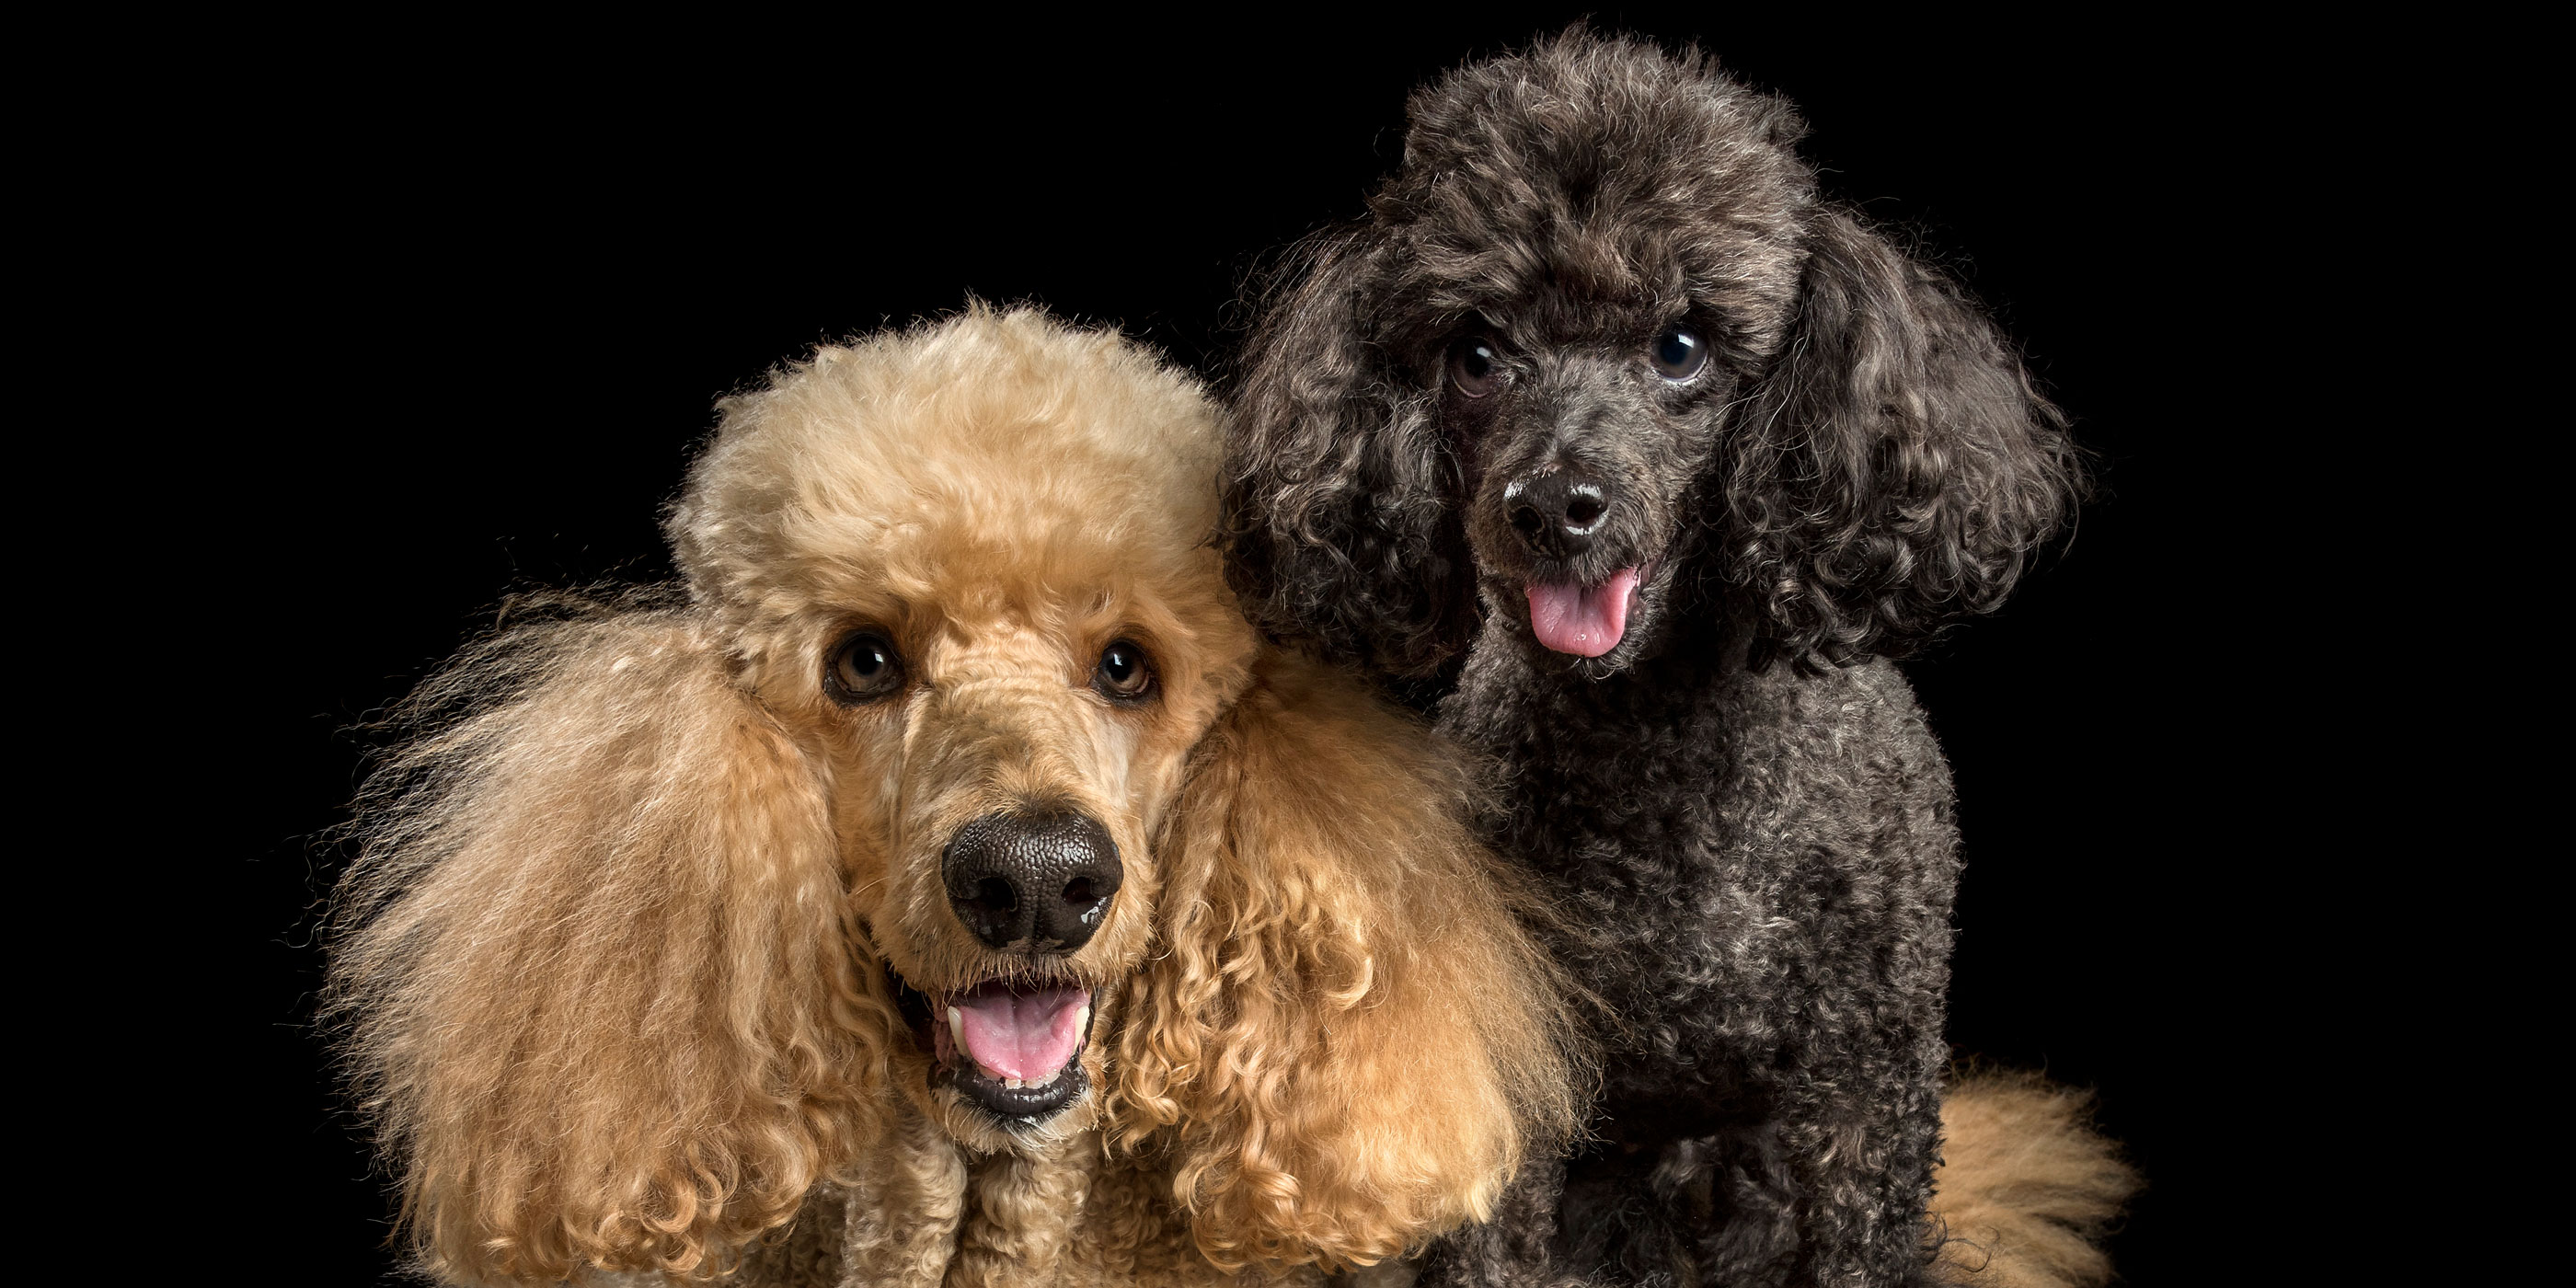 smiling pair of poodles apricot and black